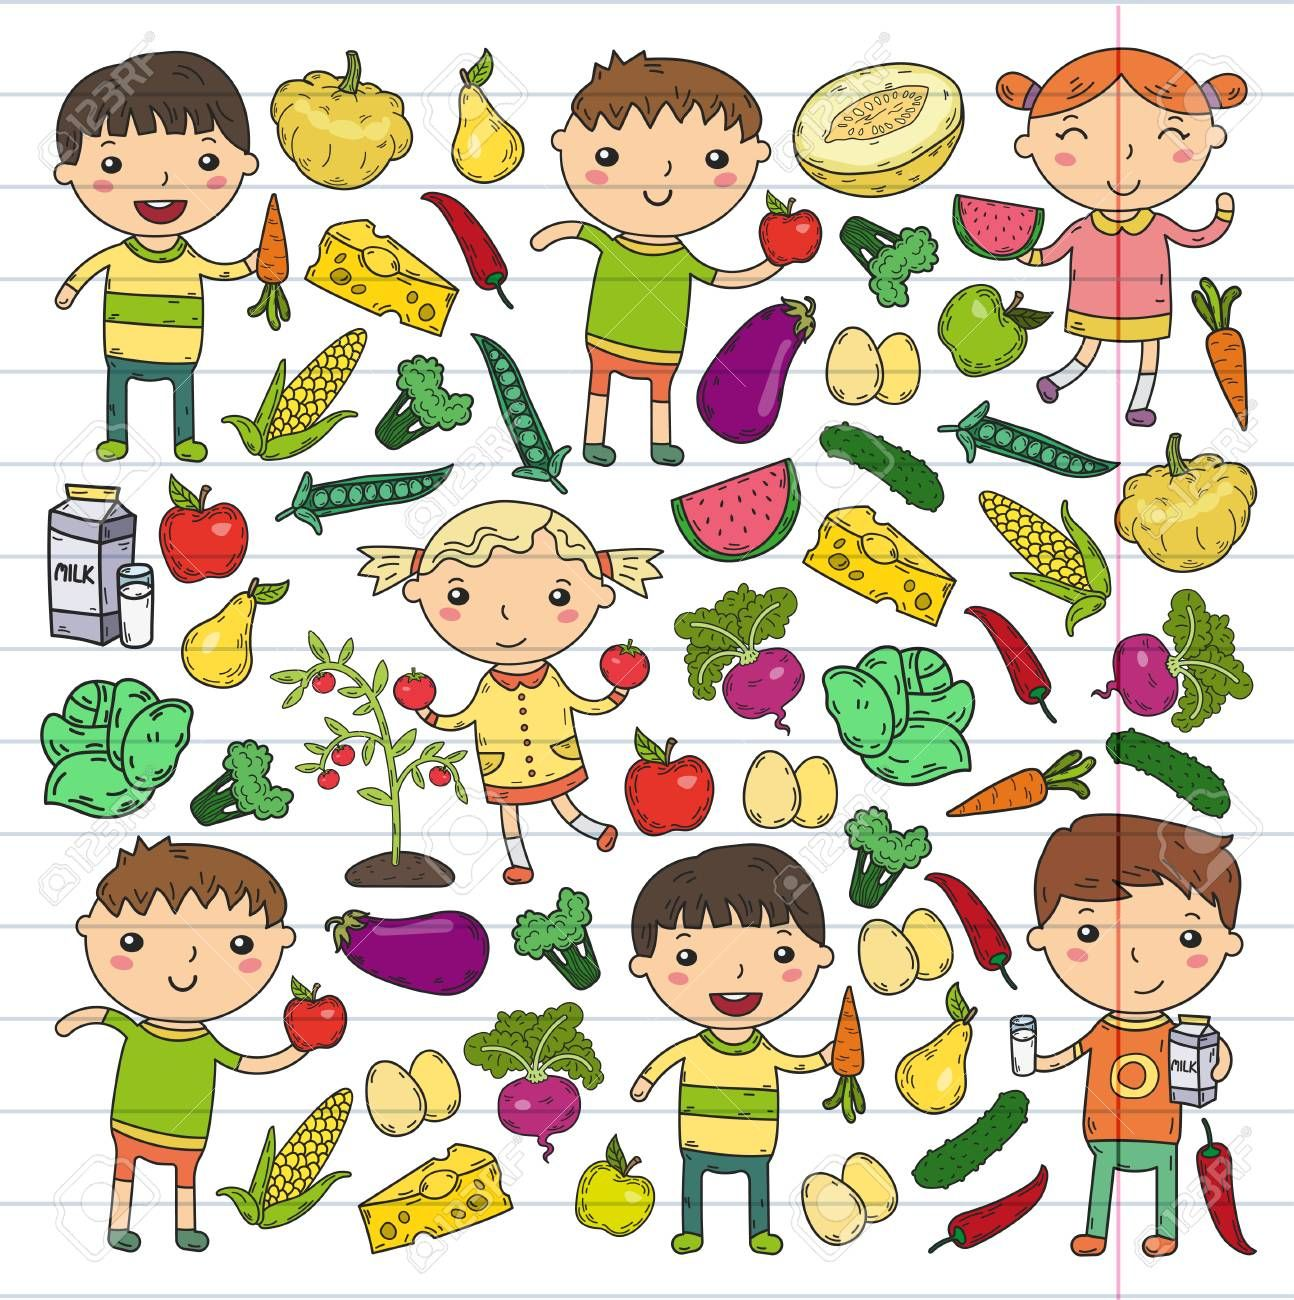 A Kindergarten Nursery Preschool School Kids Eat Healthy Food Boys And Girls With Fruits And Vegetabl Nursery Preschool Children Eating Healthy Eating For Kids